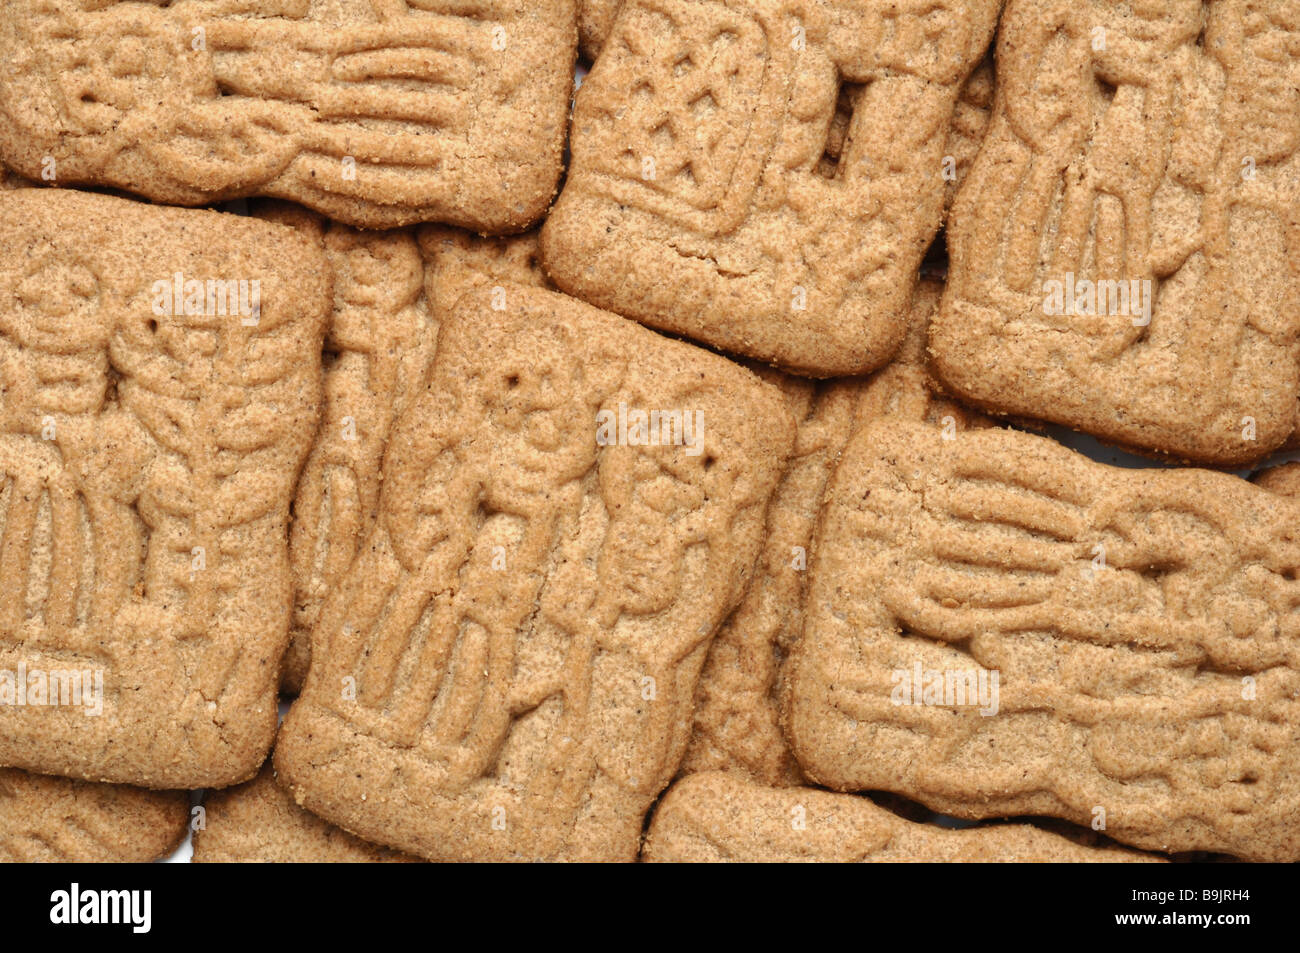 Speculaas a type of shortcrust biscuit - Stock Image